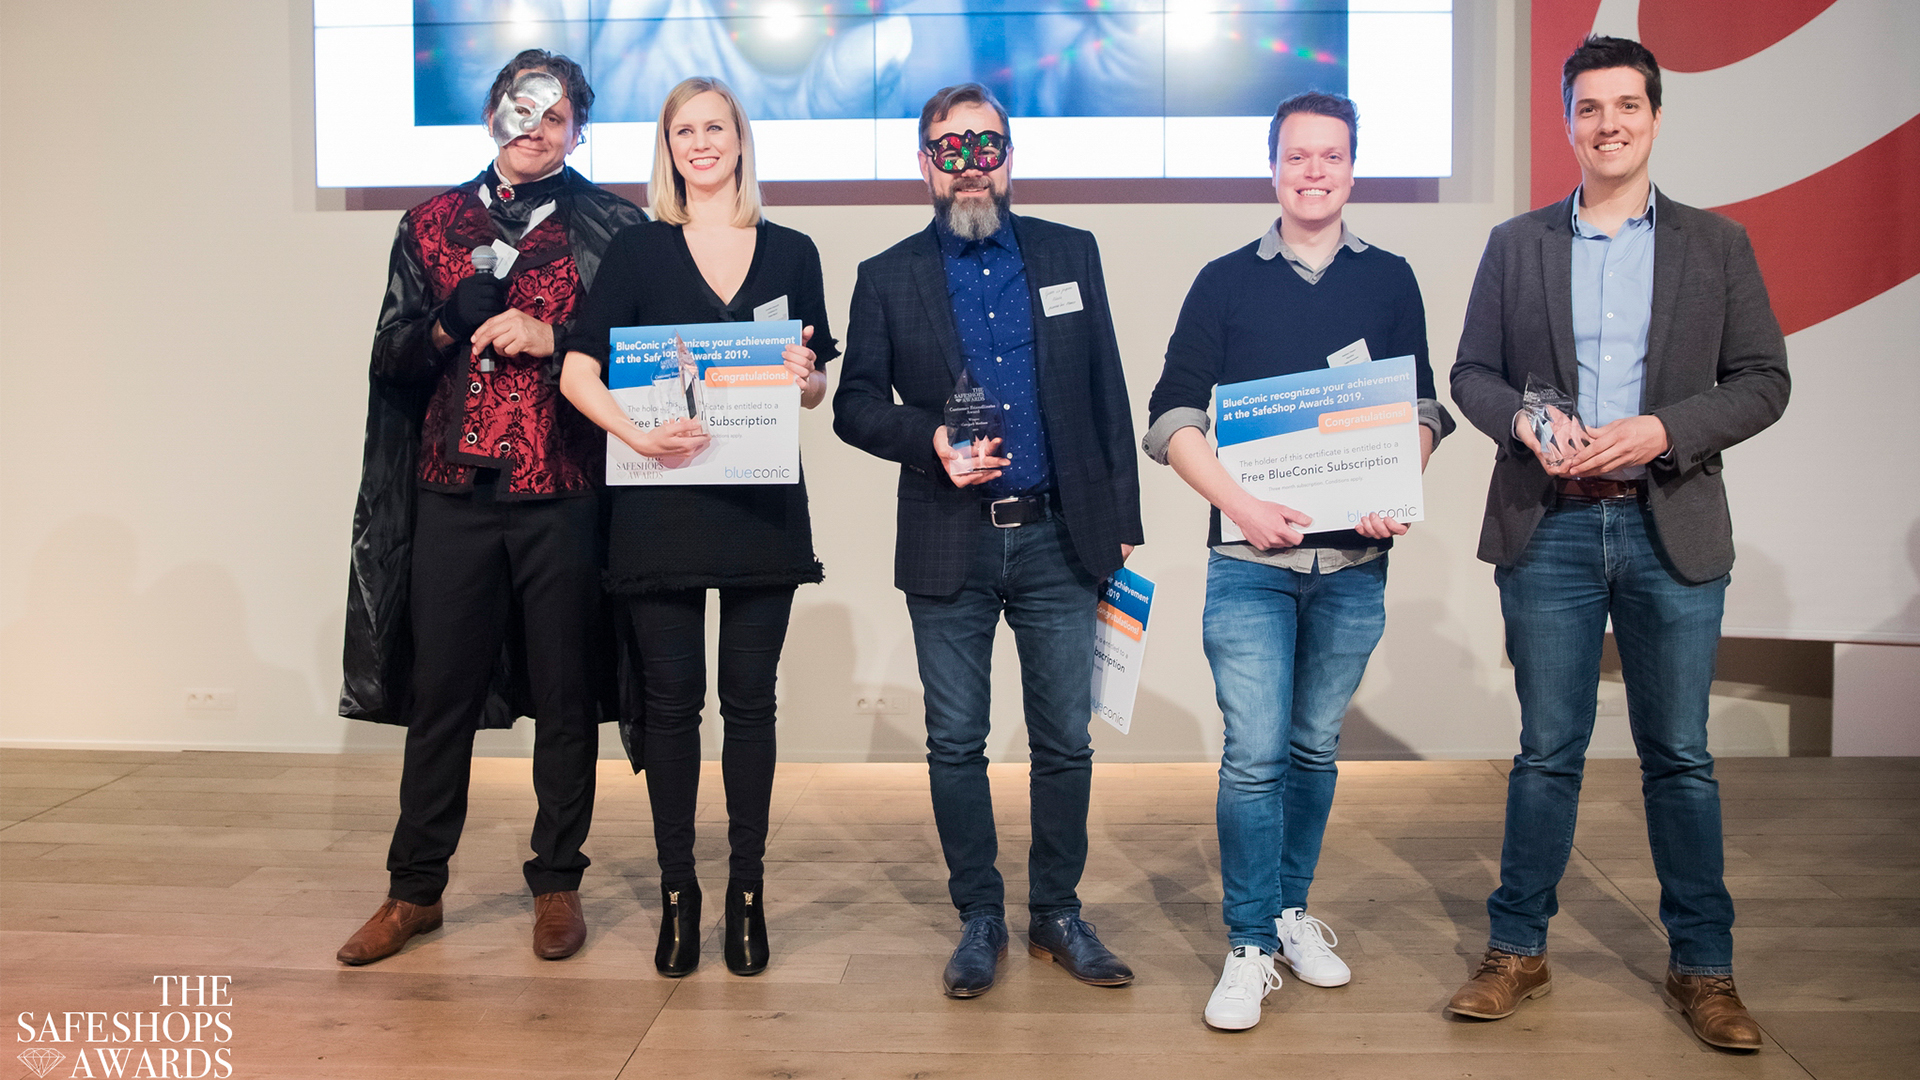 Hoera, bekroond op de SafeShops Awards